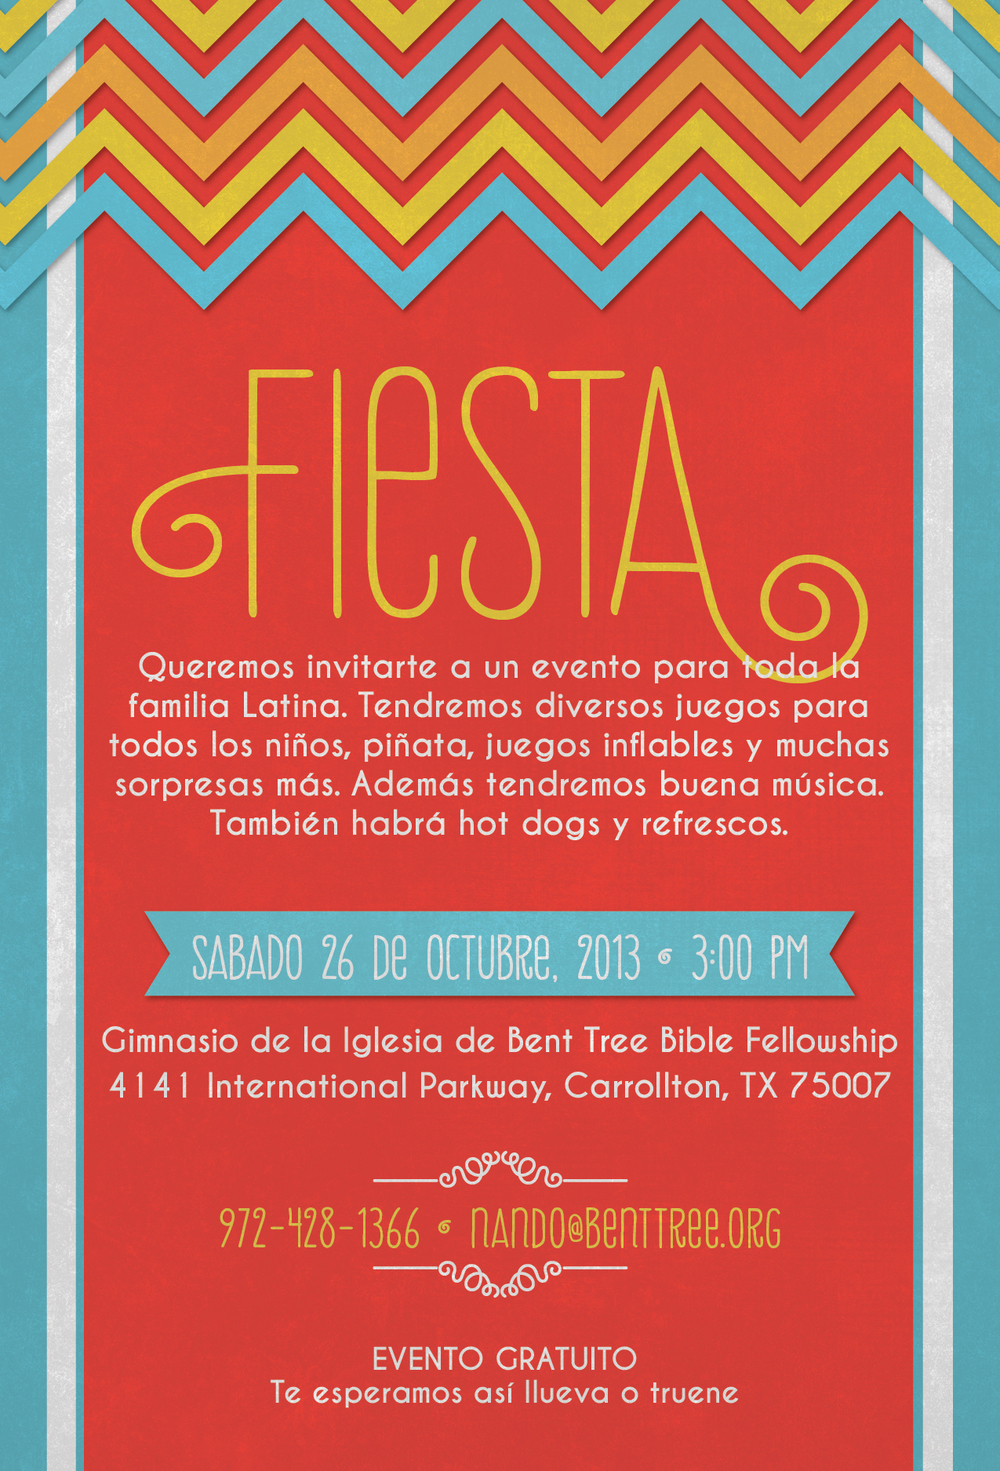 Latino Event Invitation Design